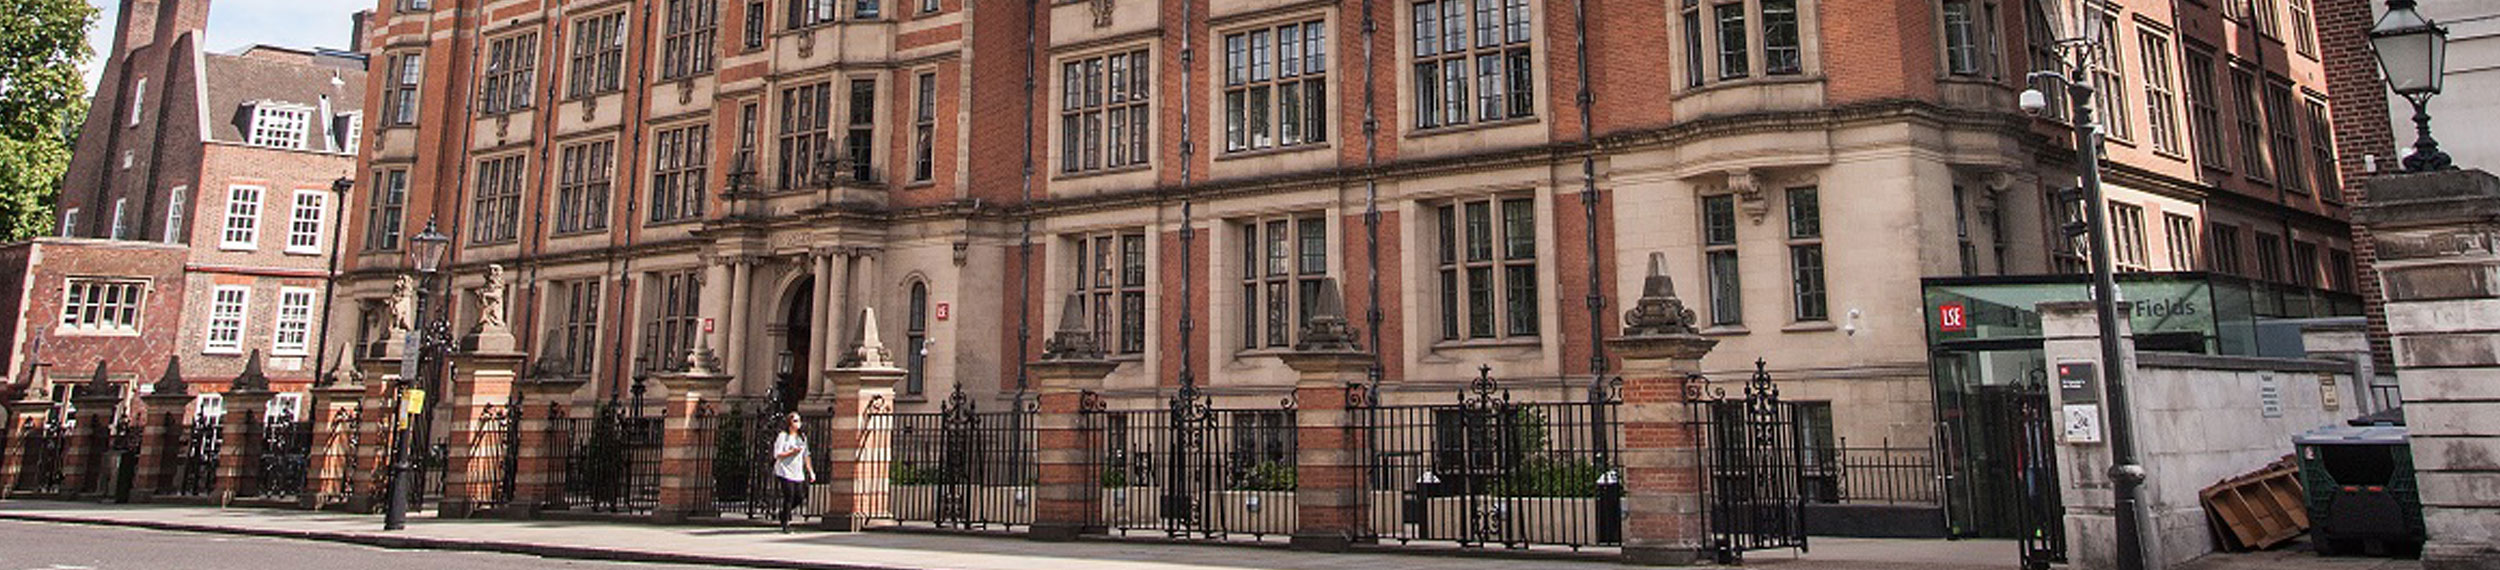 A brick building shot of London School of Economics in London, England.